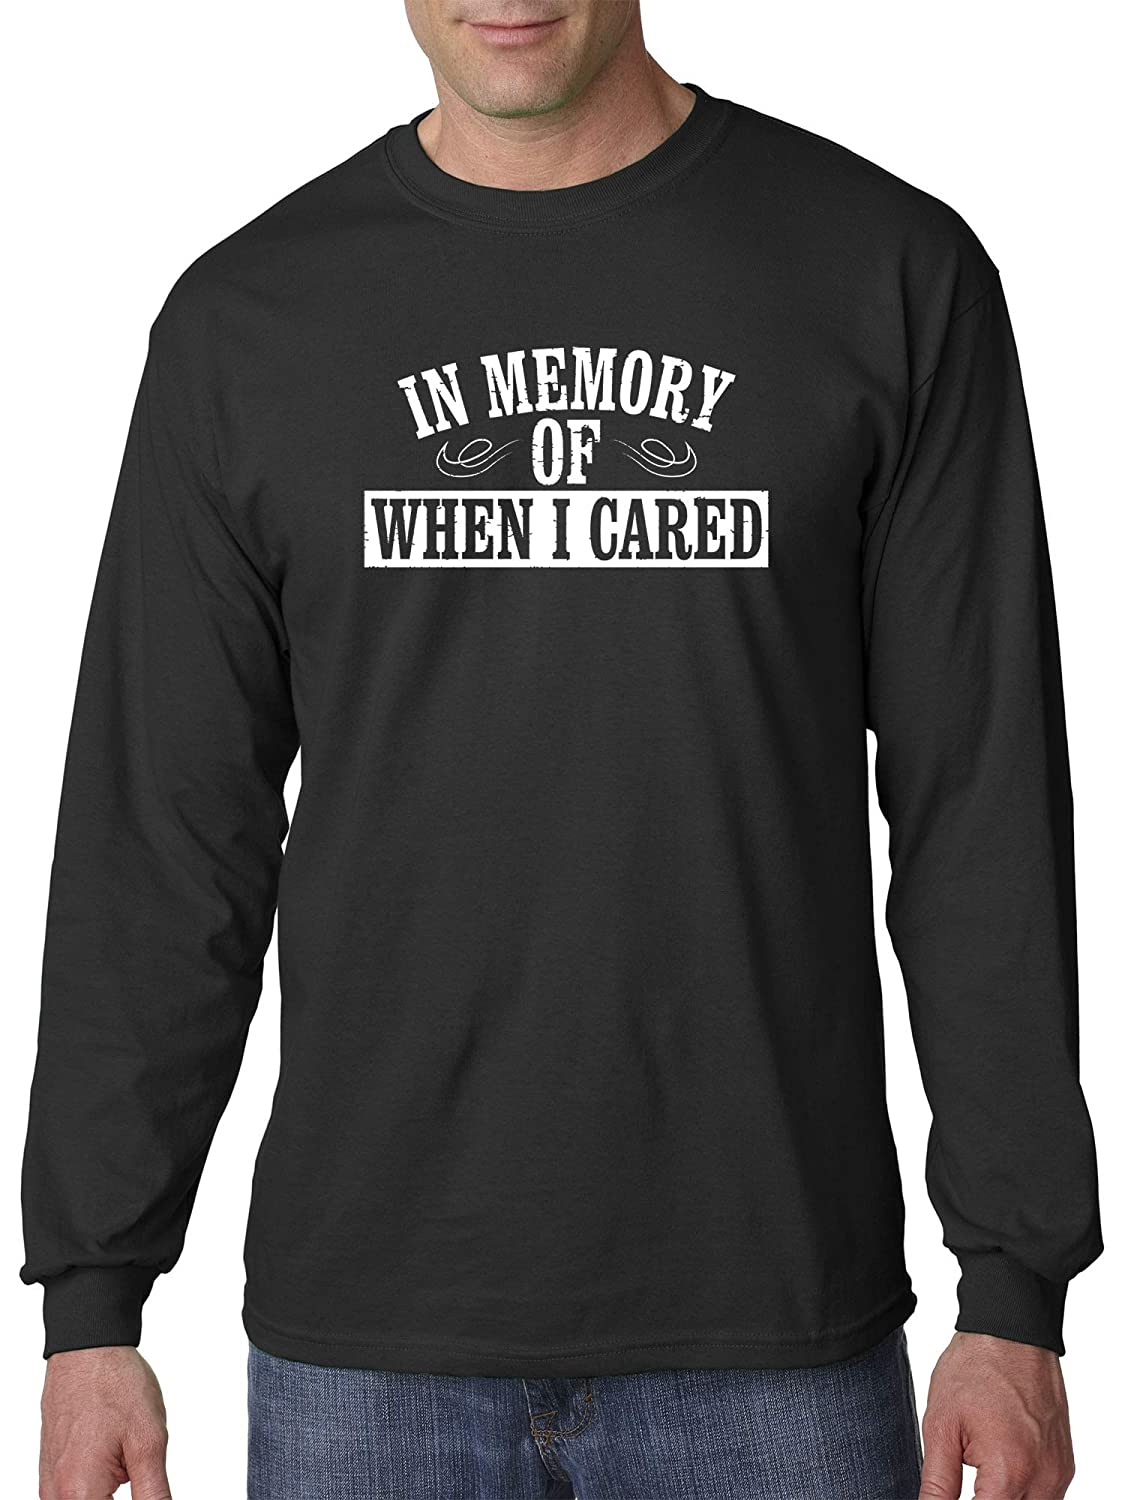 da078648a Amazon.com: New Way 907 - Unisex Long-Sleeve T-Shirt in Memory of When I  Cared Sarcasm Humor: Clothing